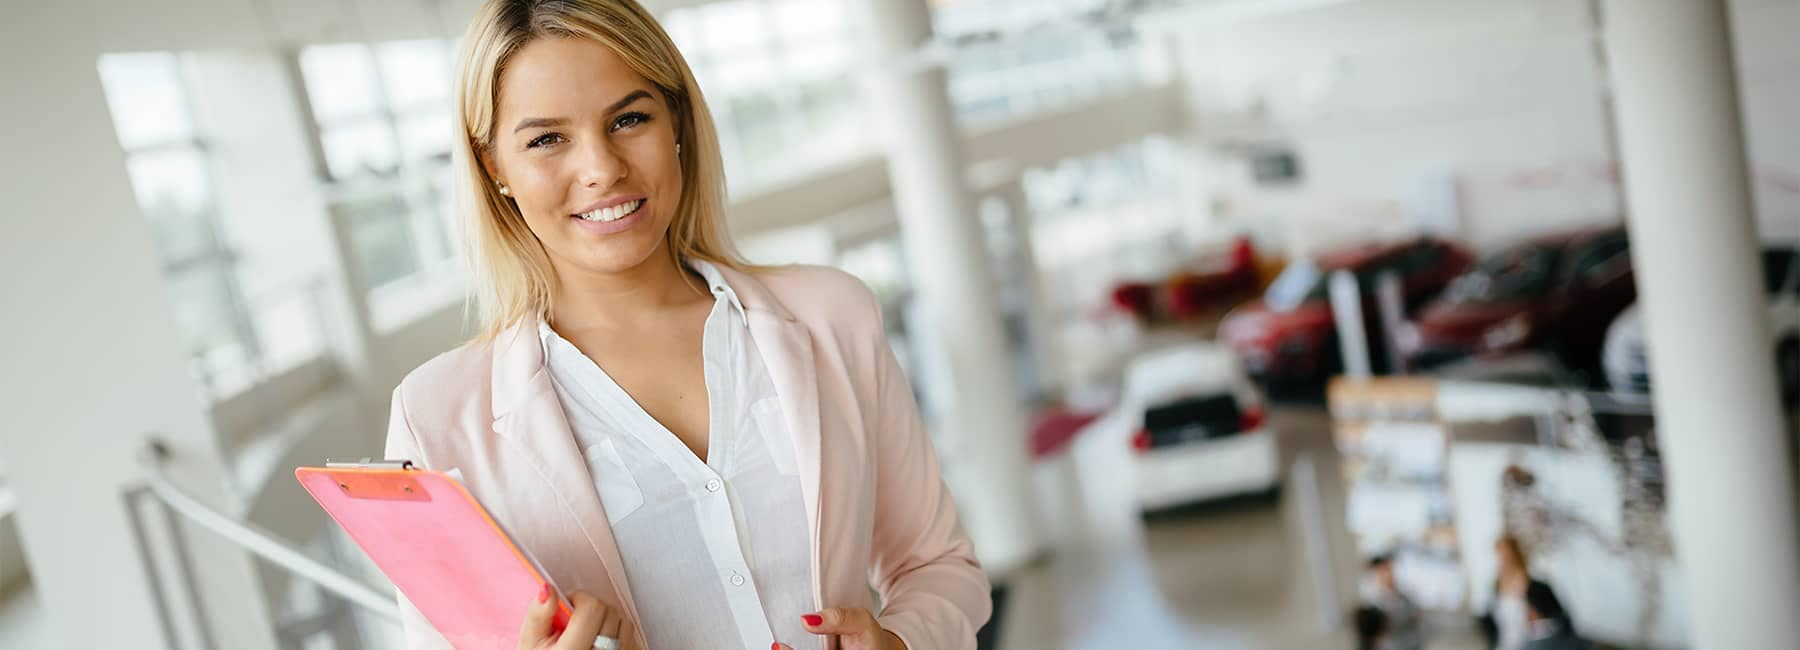 Business Woman at Dealership